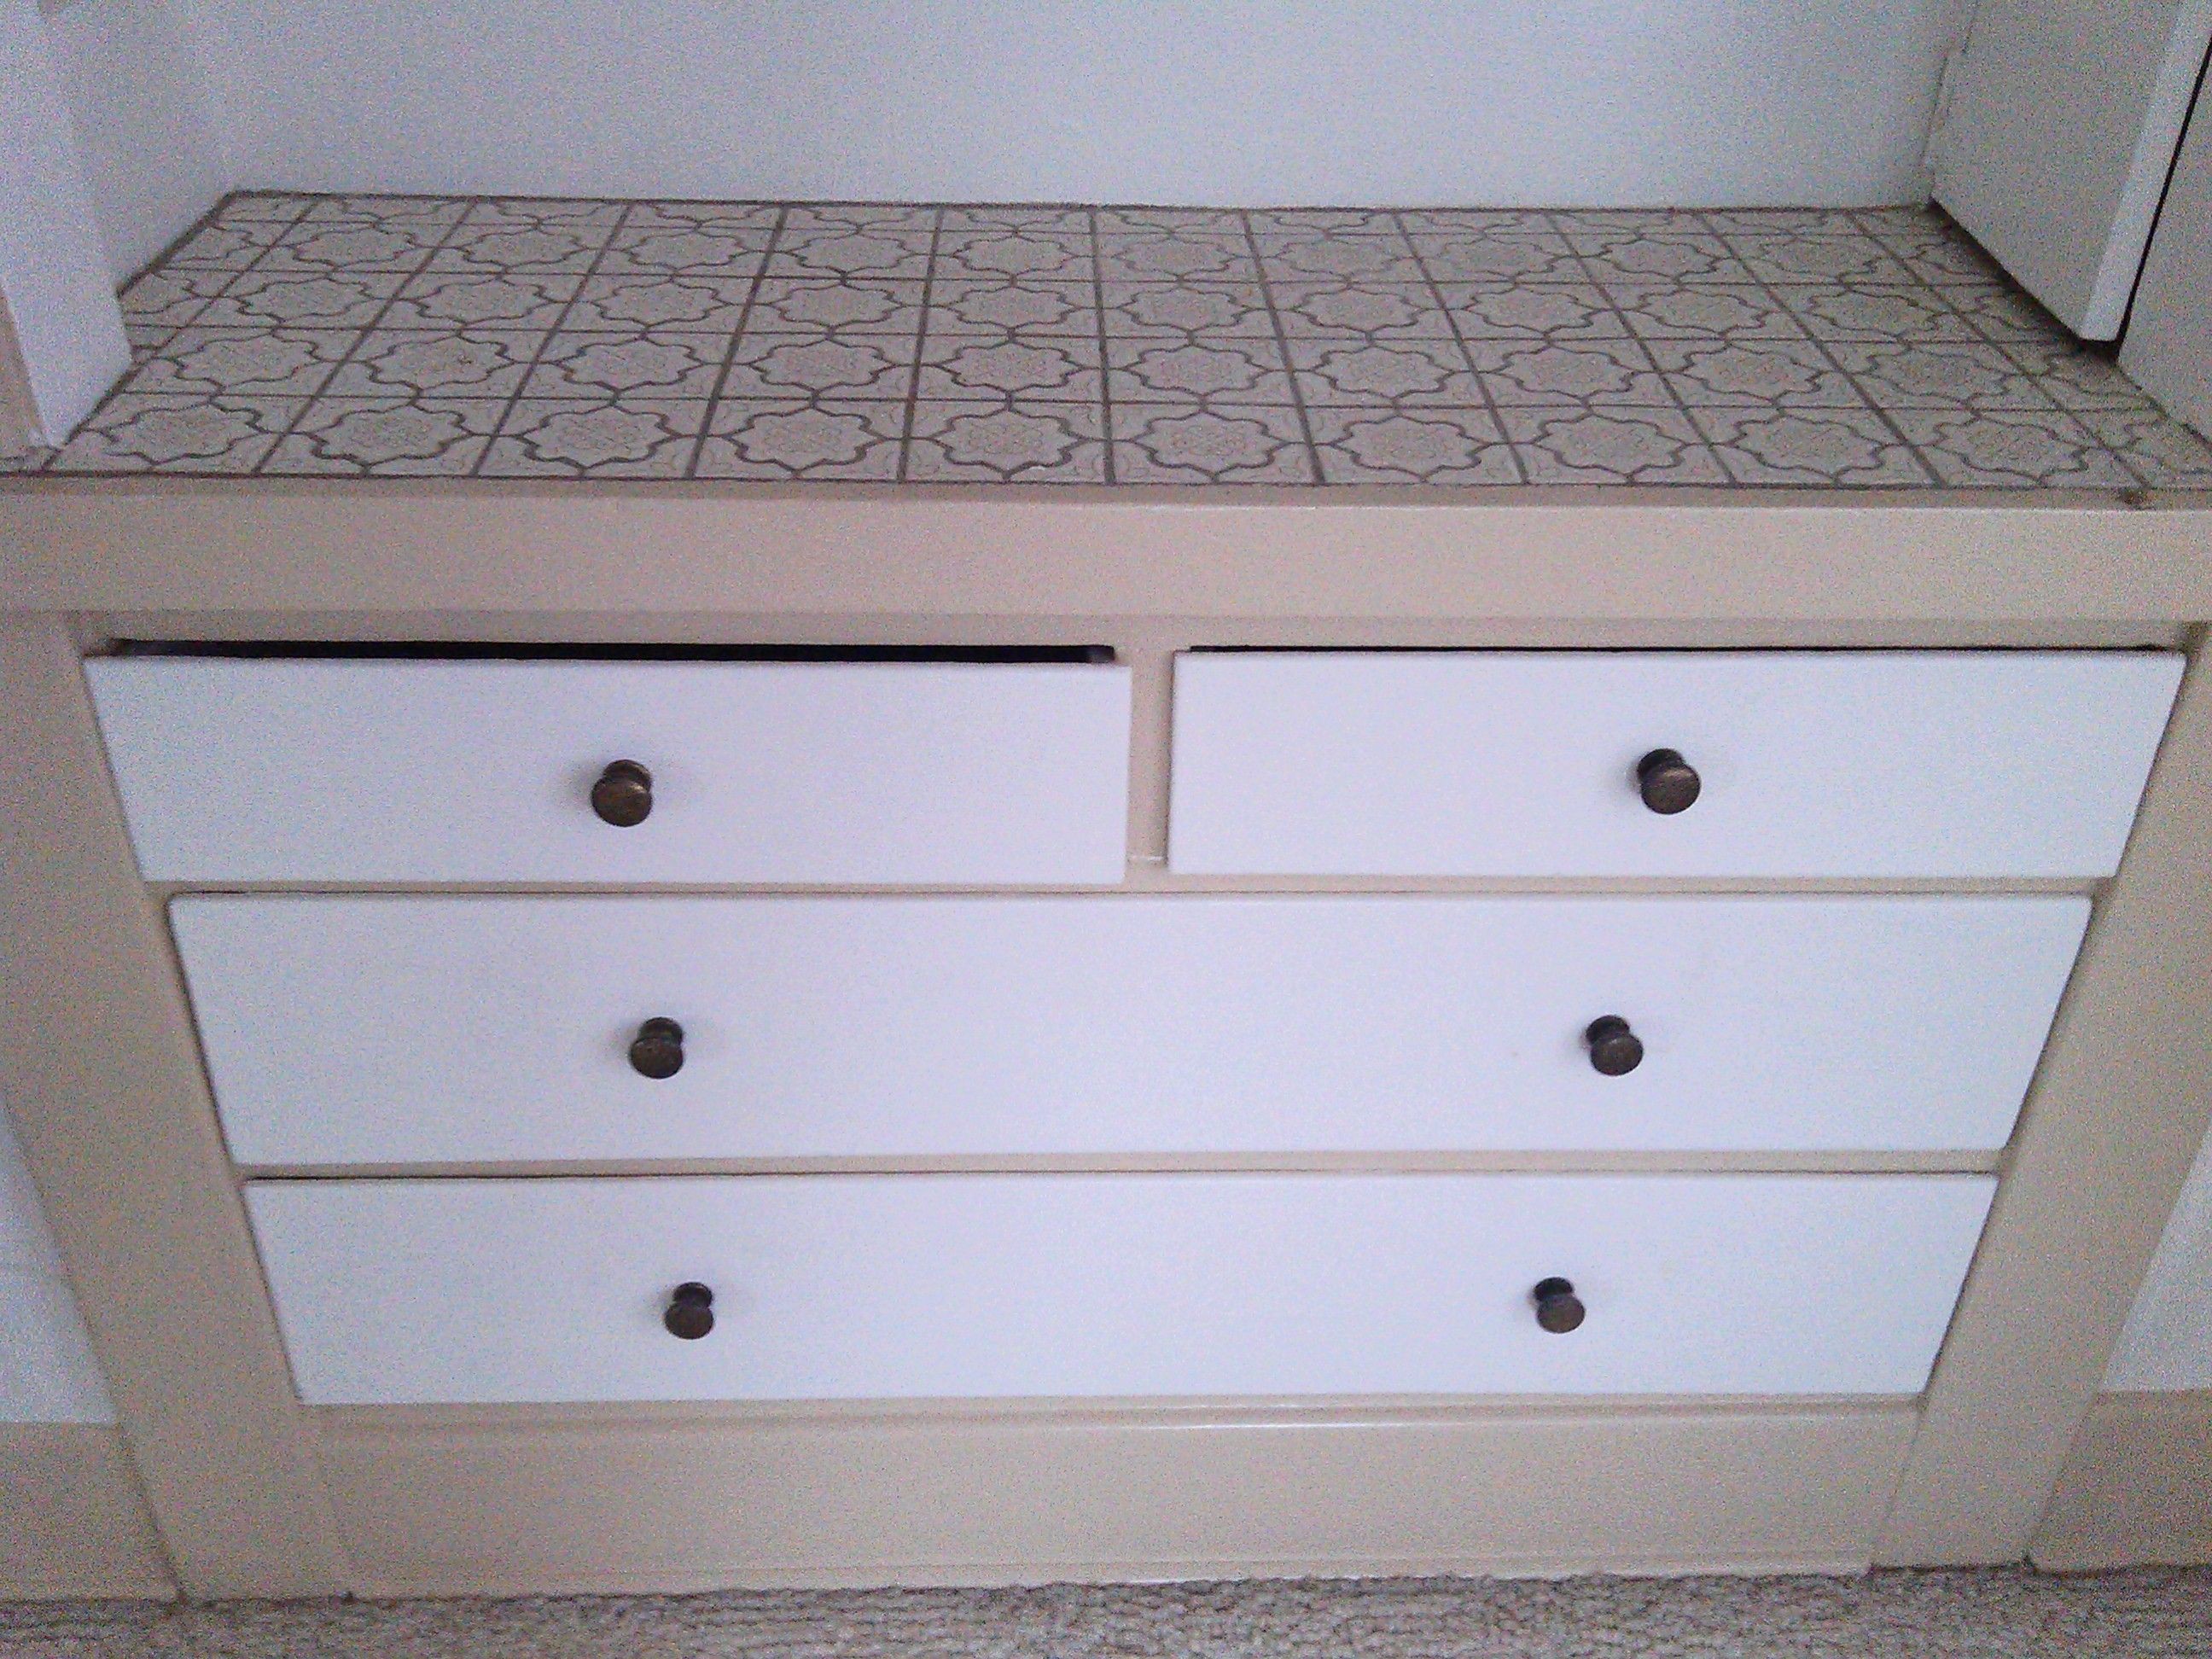 Exceptionnel Cabinet Repair And Painting In San Diego As A Barter Deal.